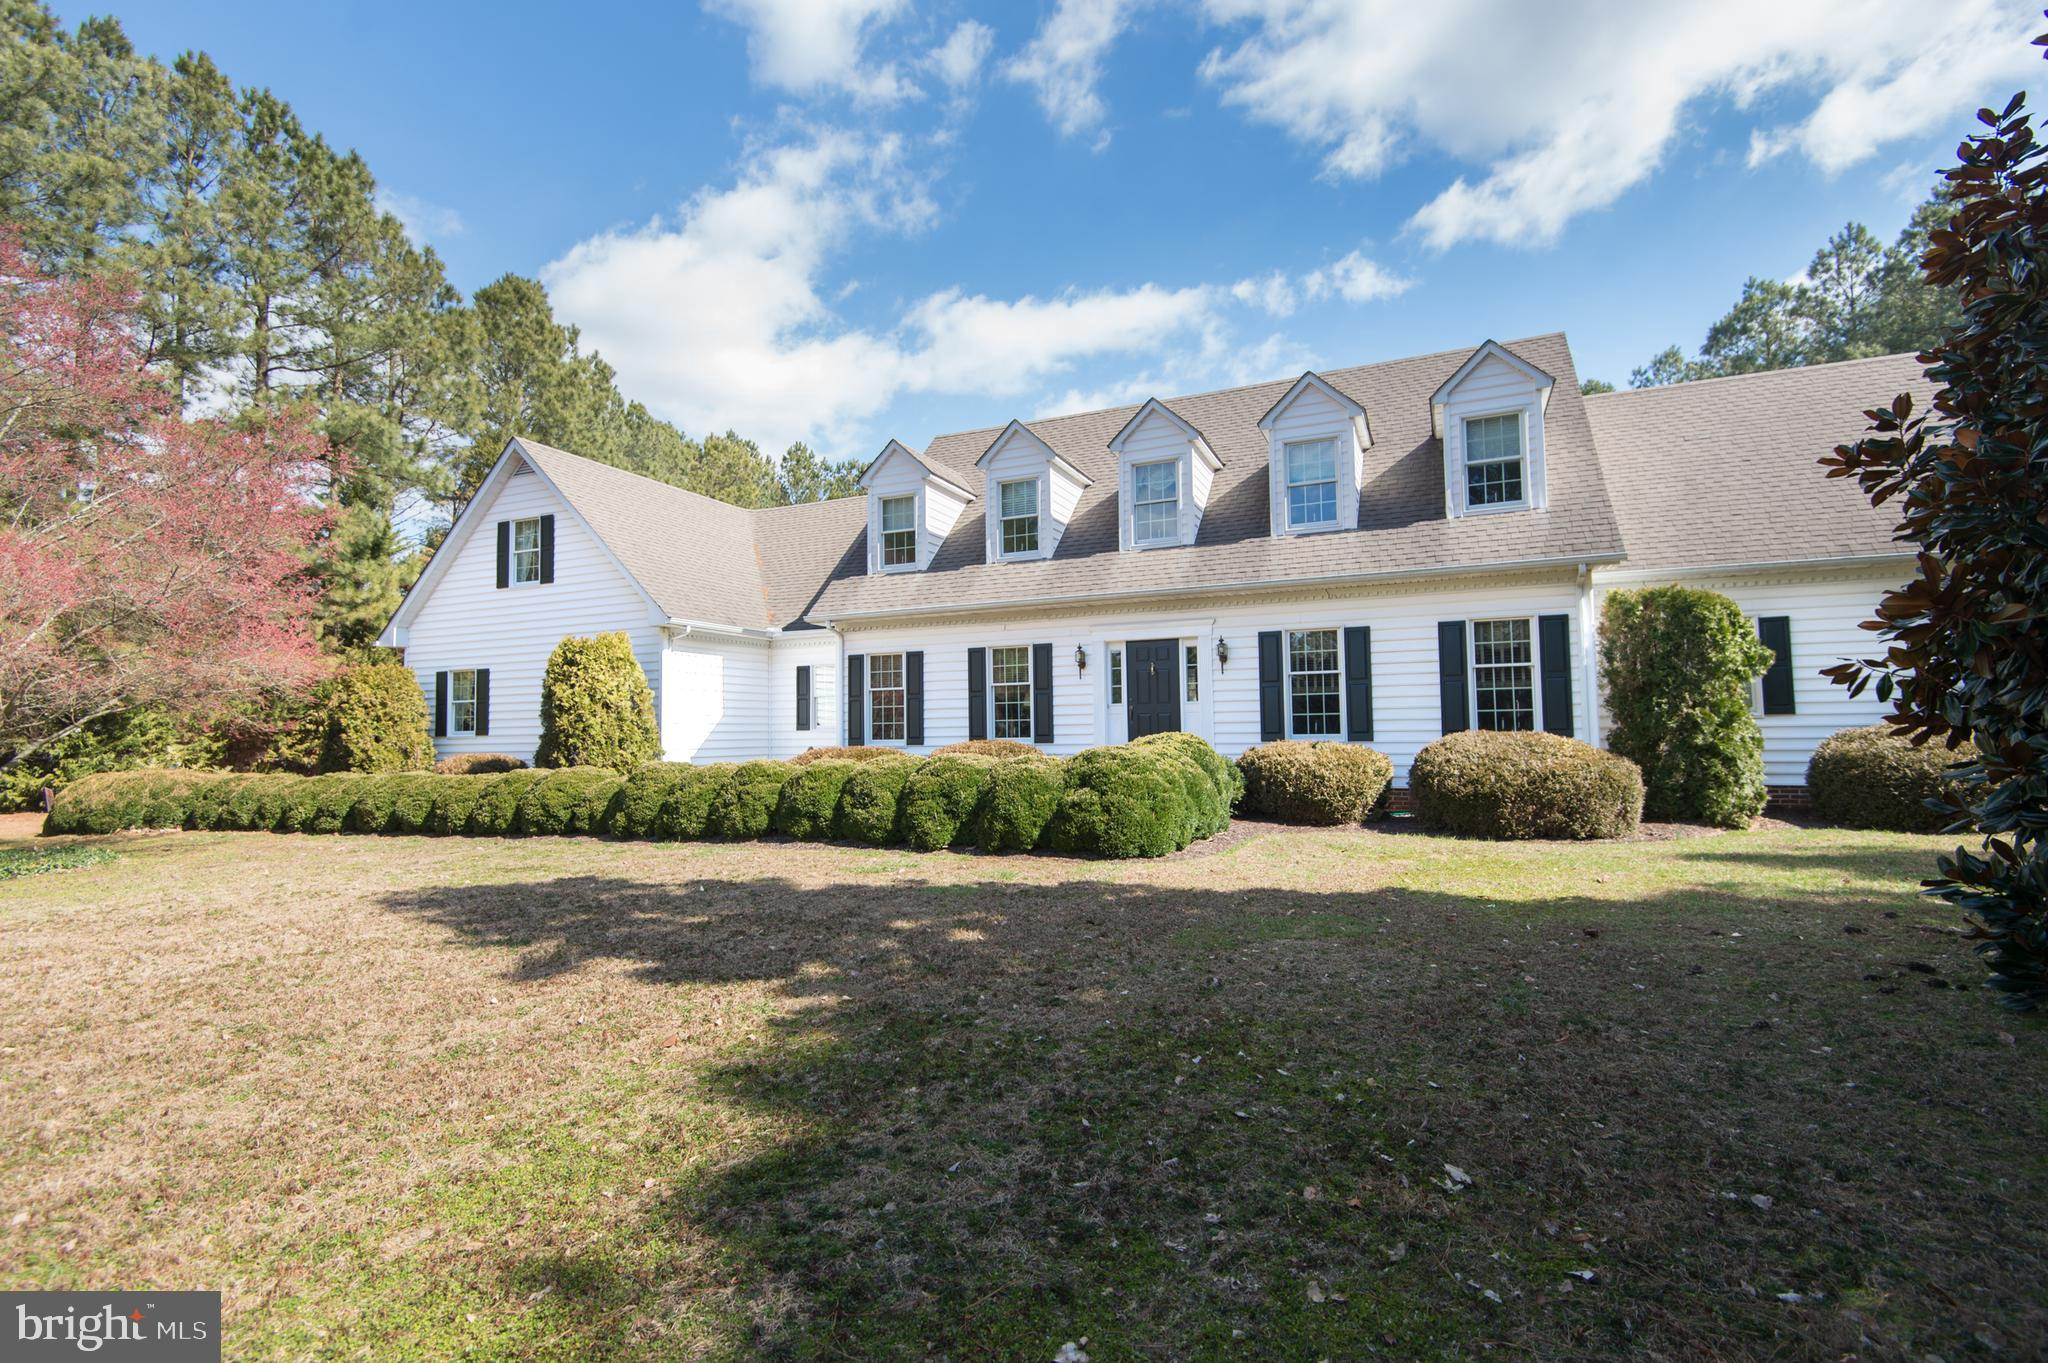 3534 INDIAN GRANT ROAD, EAST NEW MARKET, MD 21631